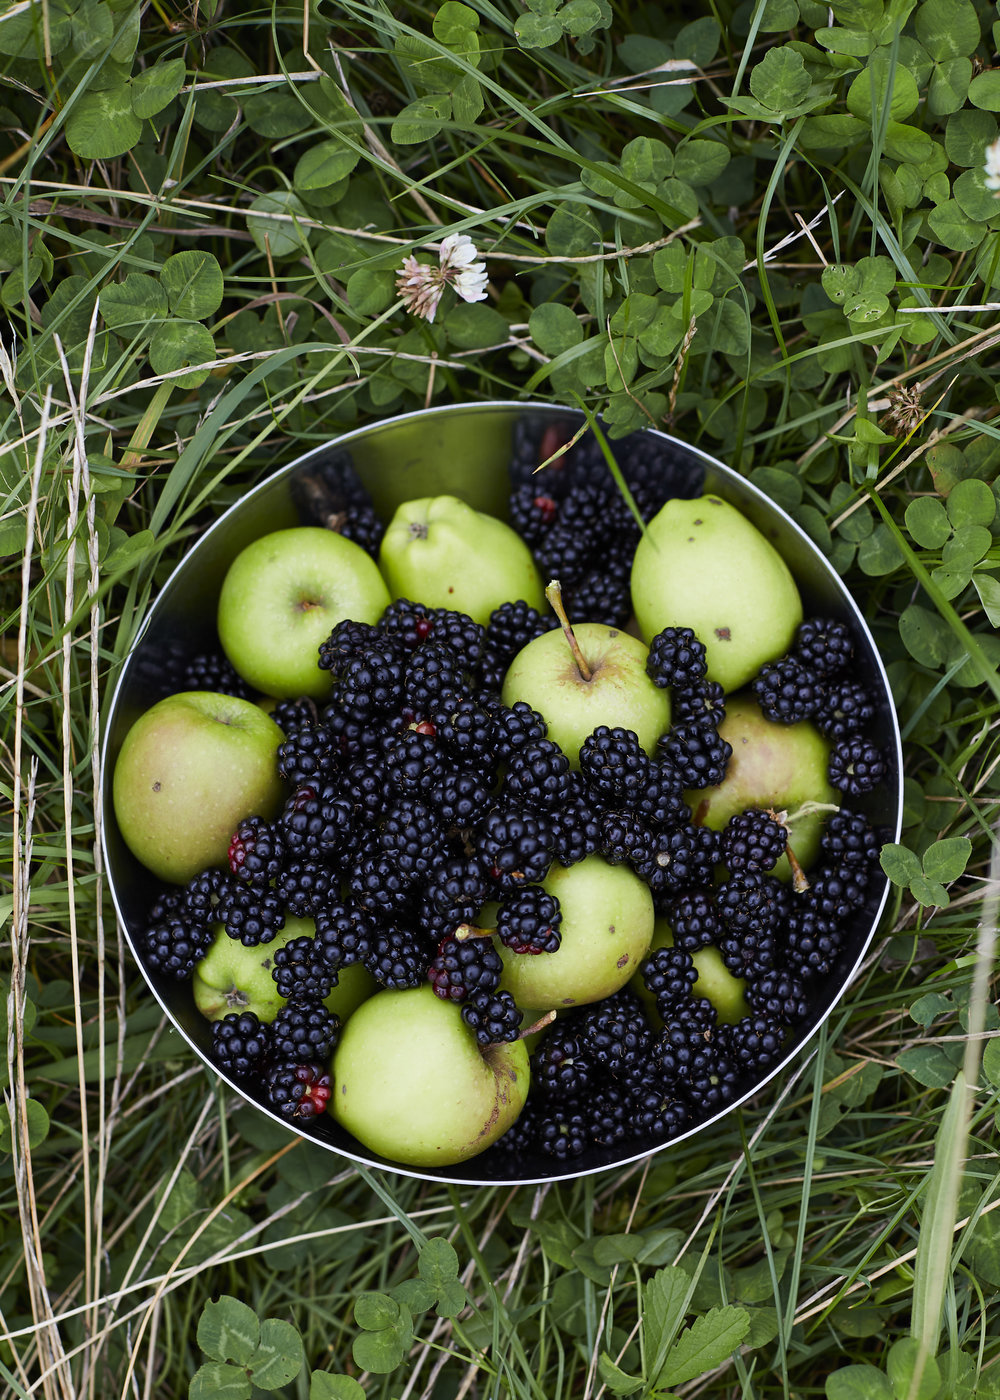 Apples & Blackberries